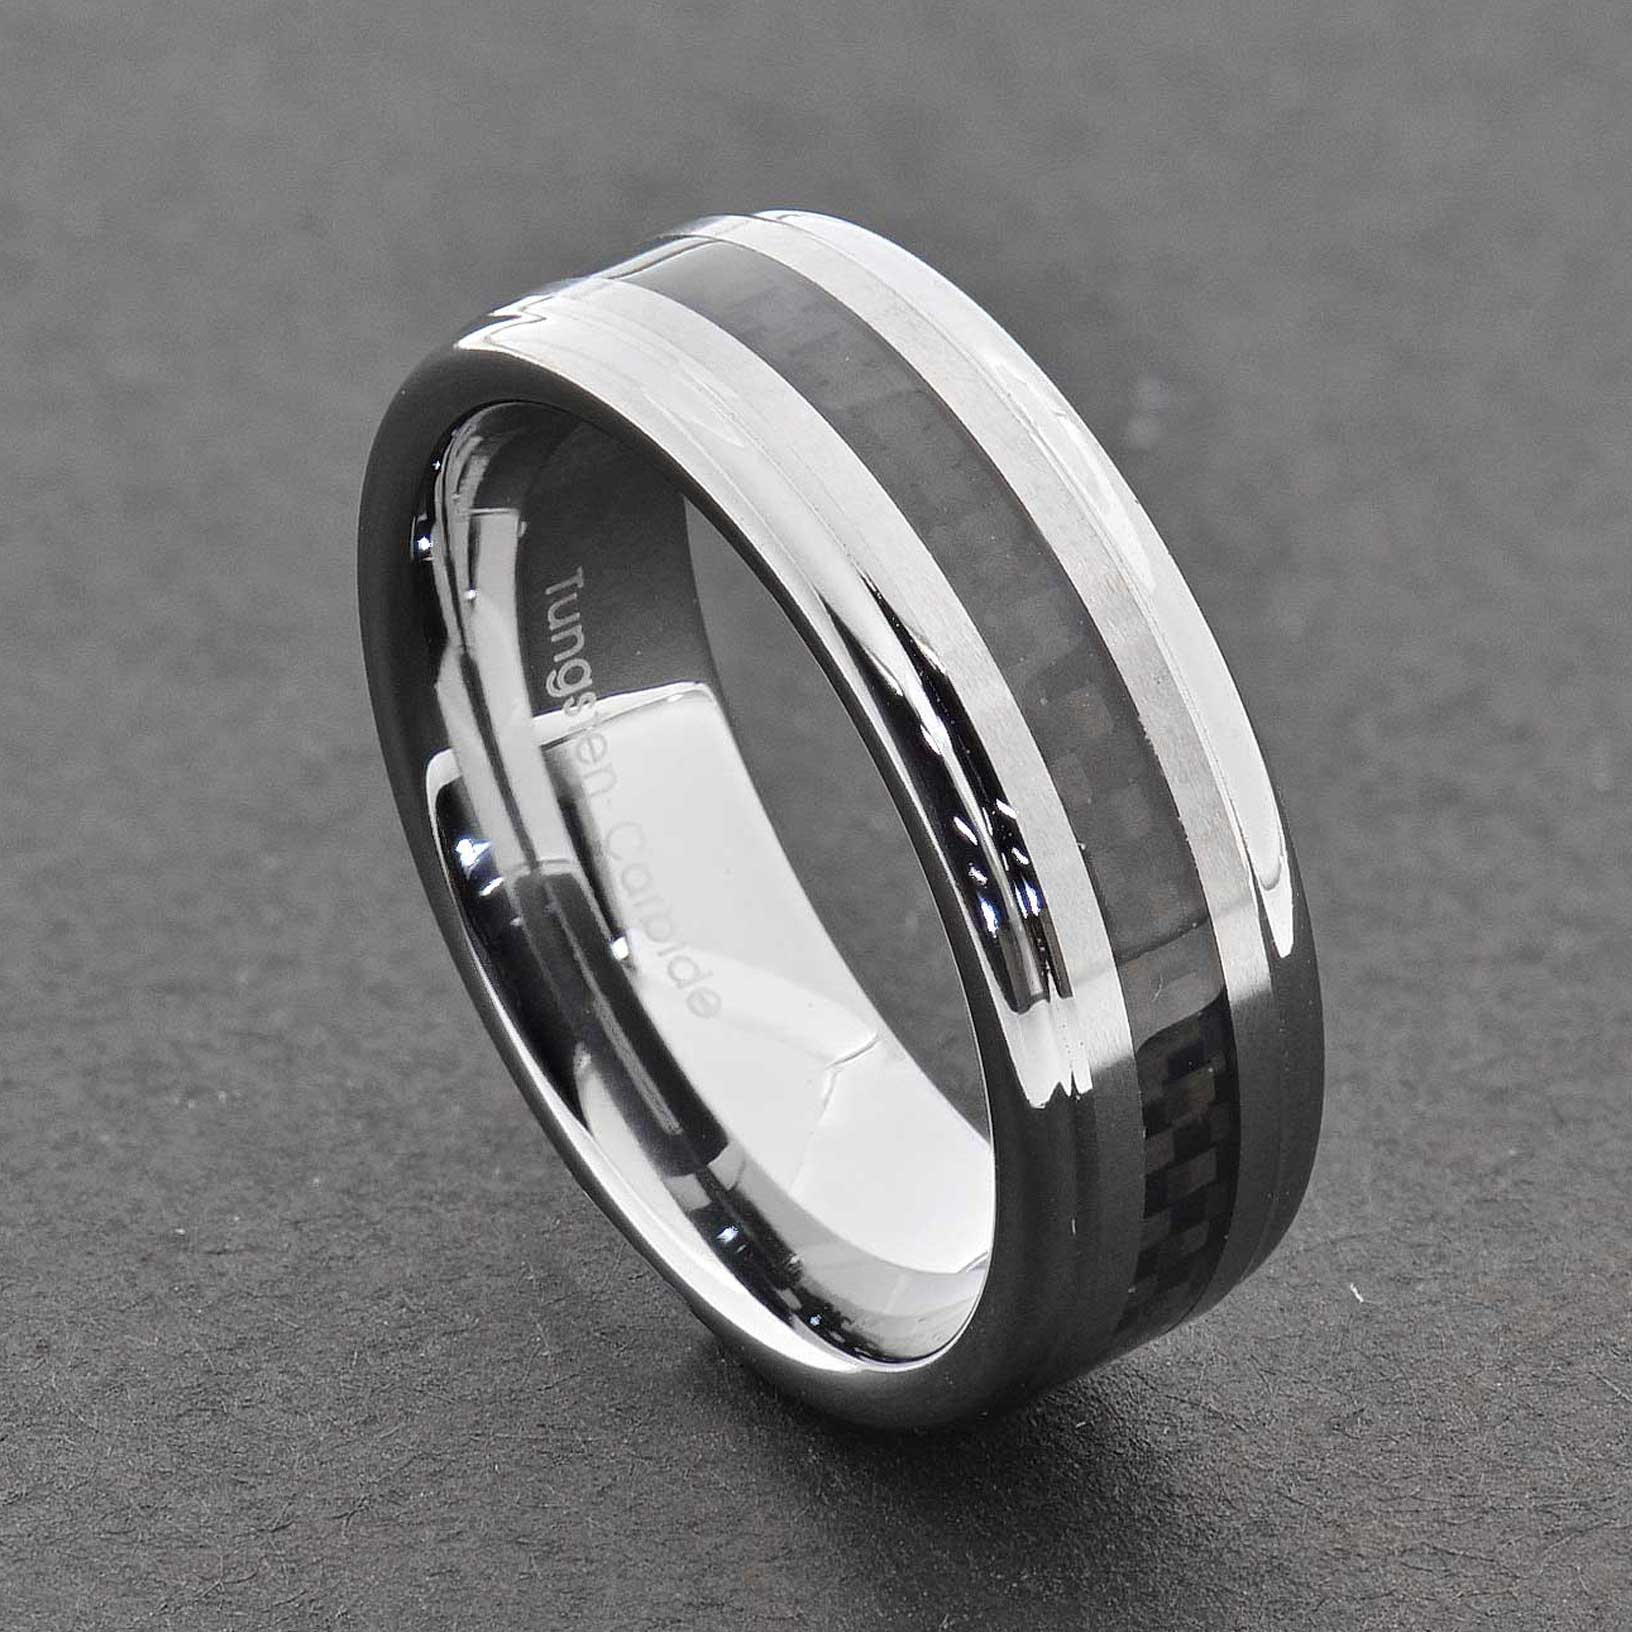 cheap comfort profile nfl for bands rings tungsten ring pin s titanium football with domed wedding fit handcraft mens men